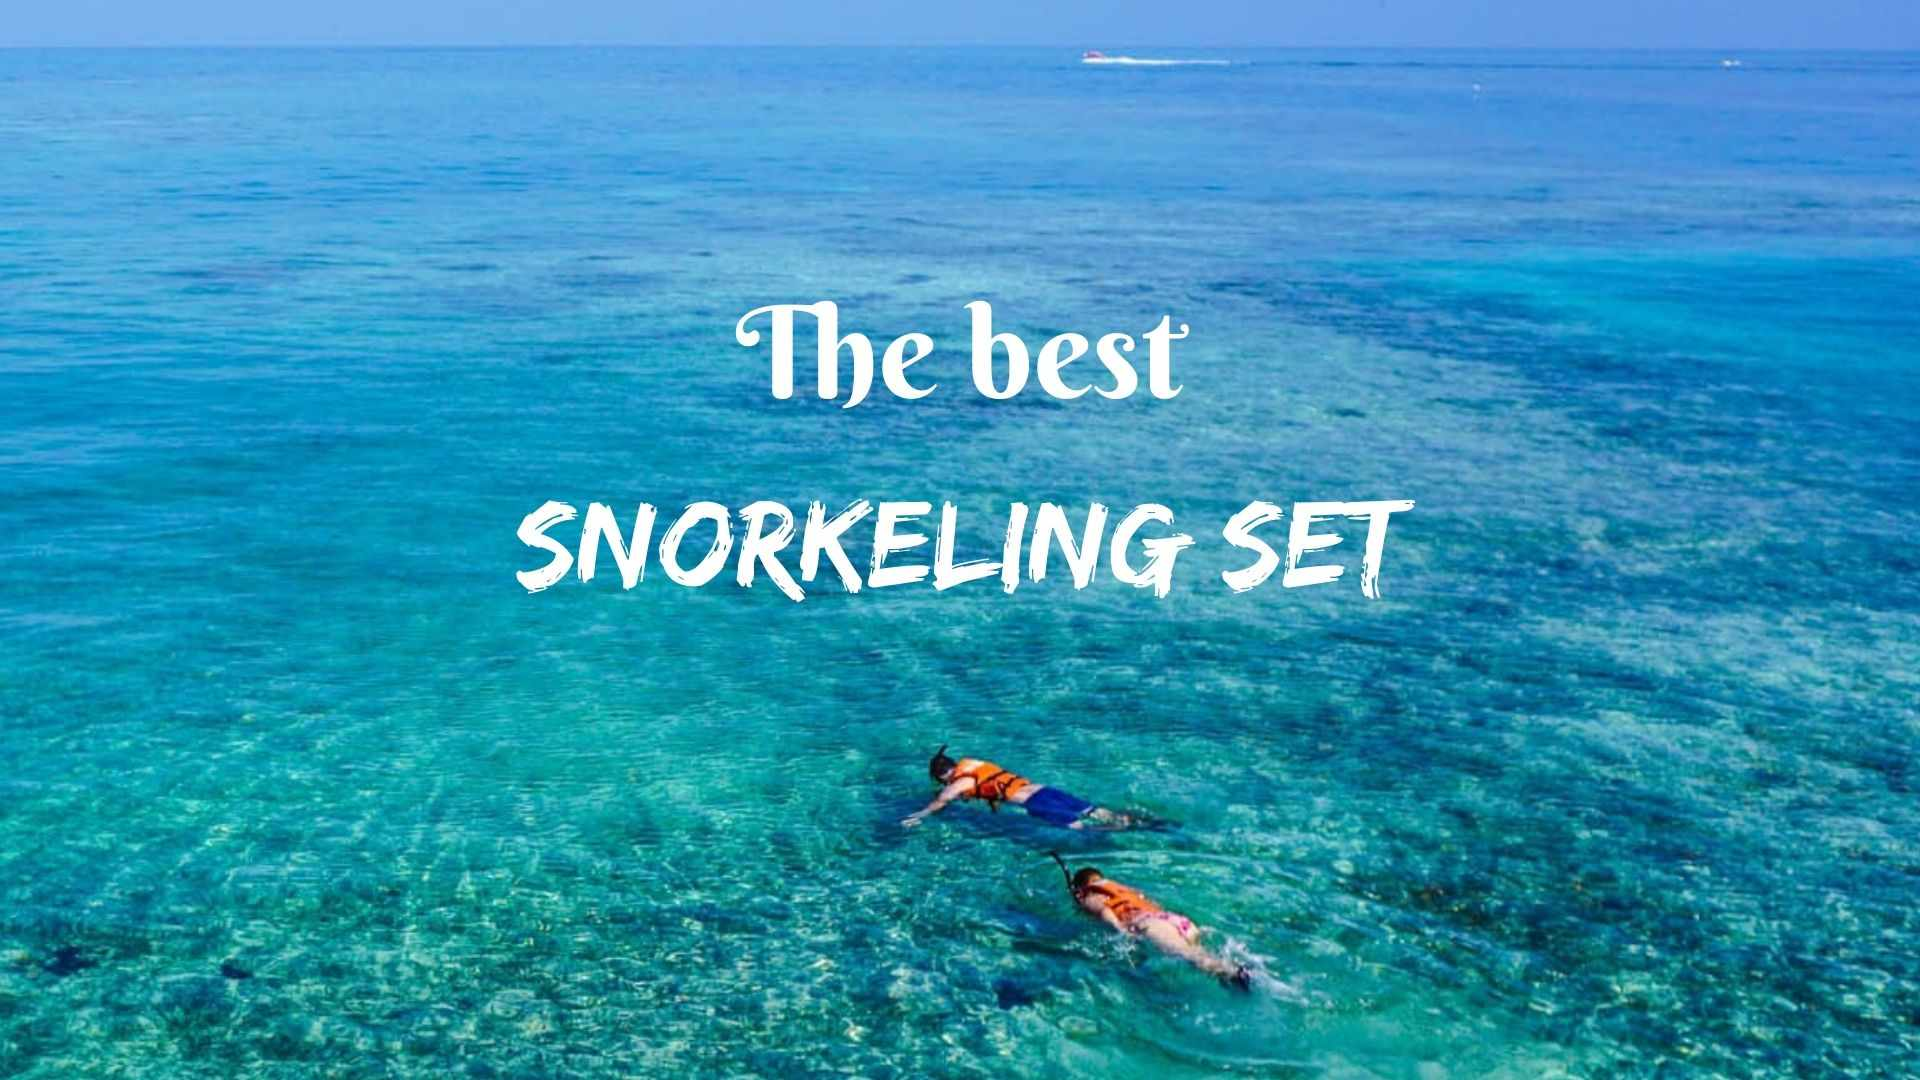 The best snorkeling set for diving